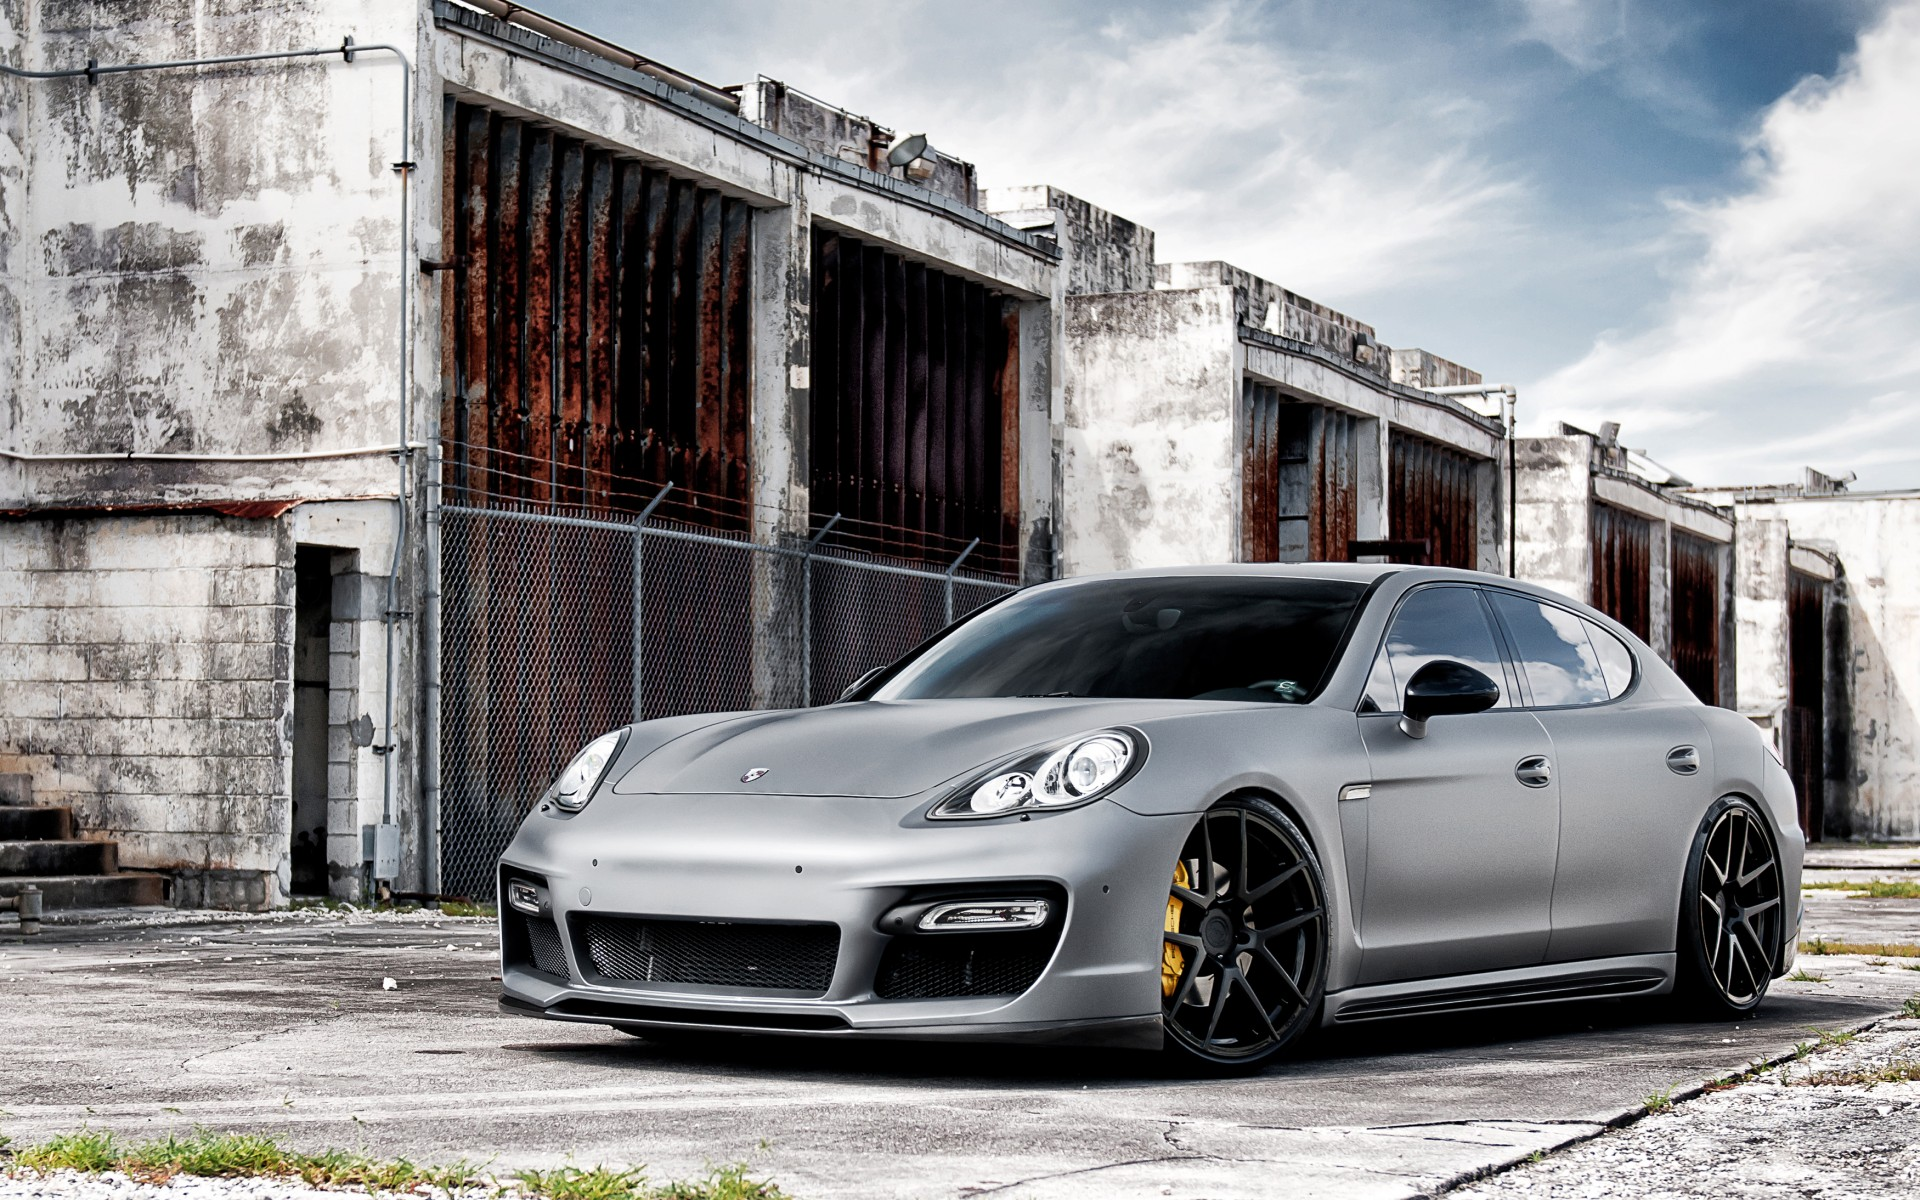 Porsche Hd Wallpapers 1080p